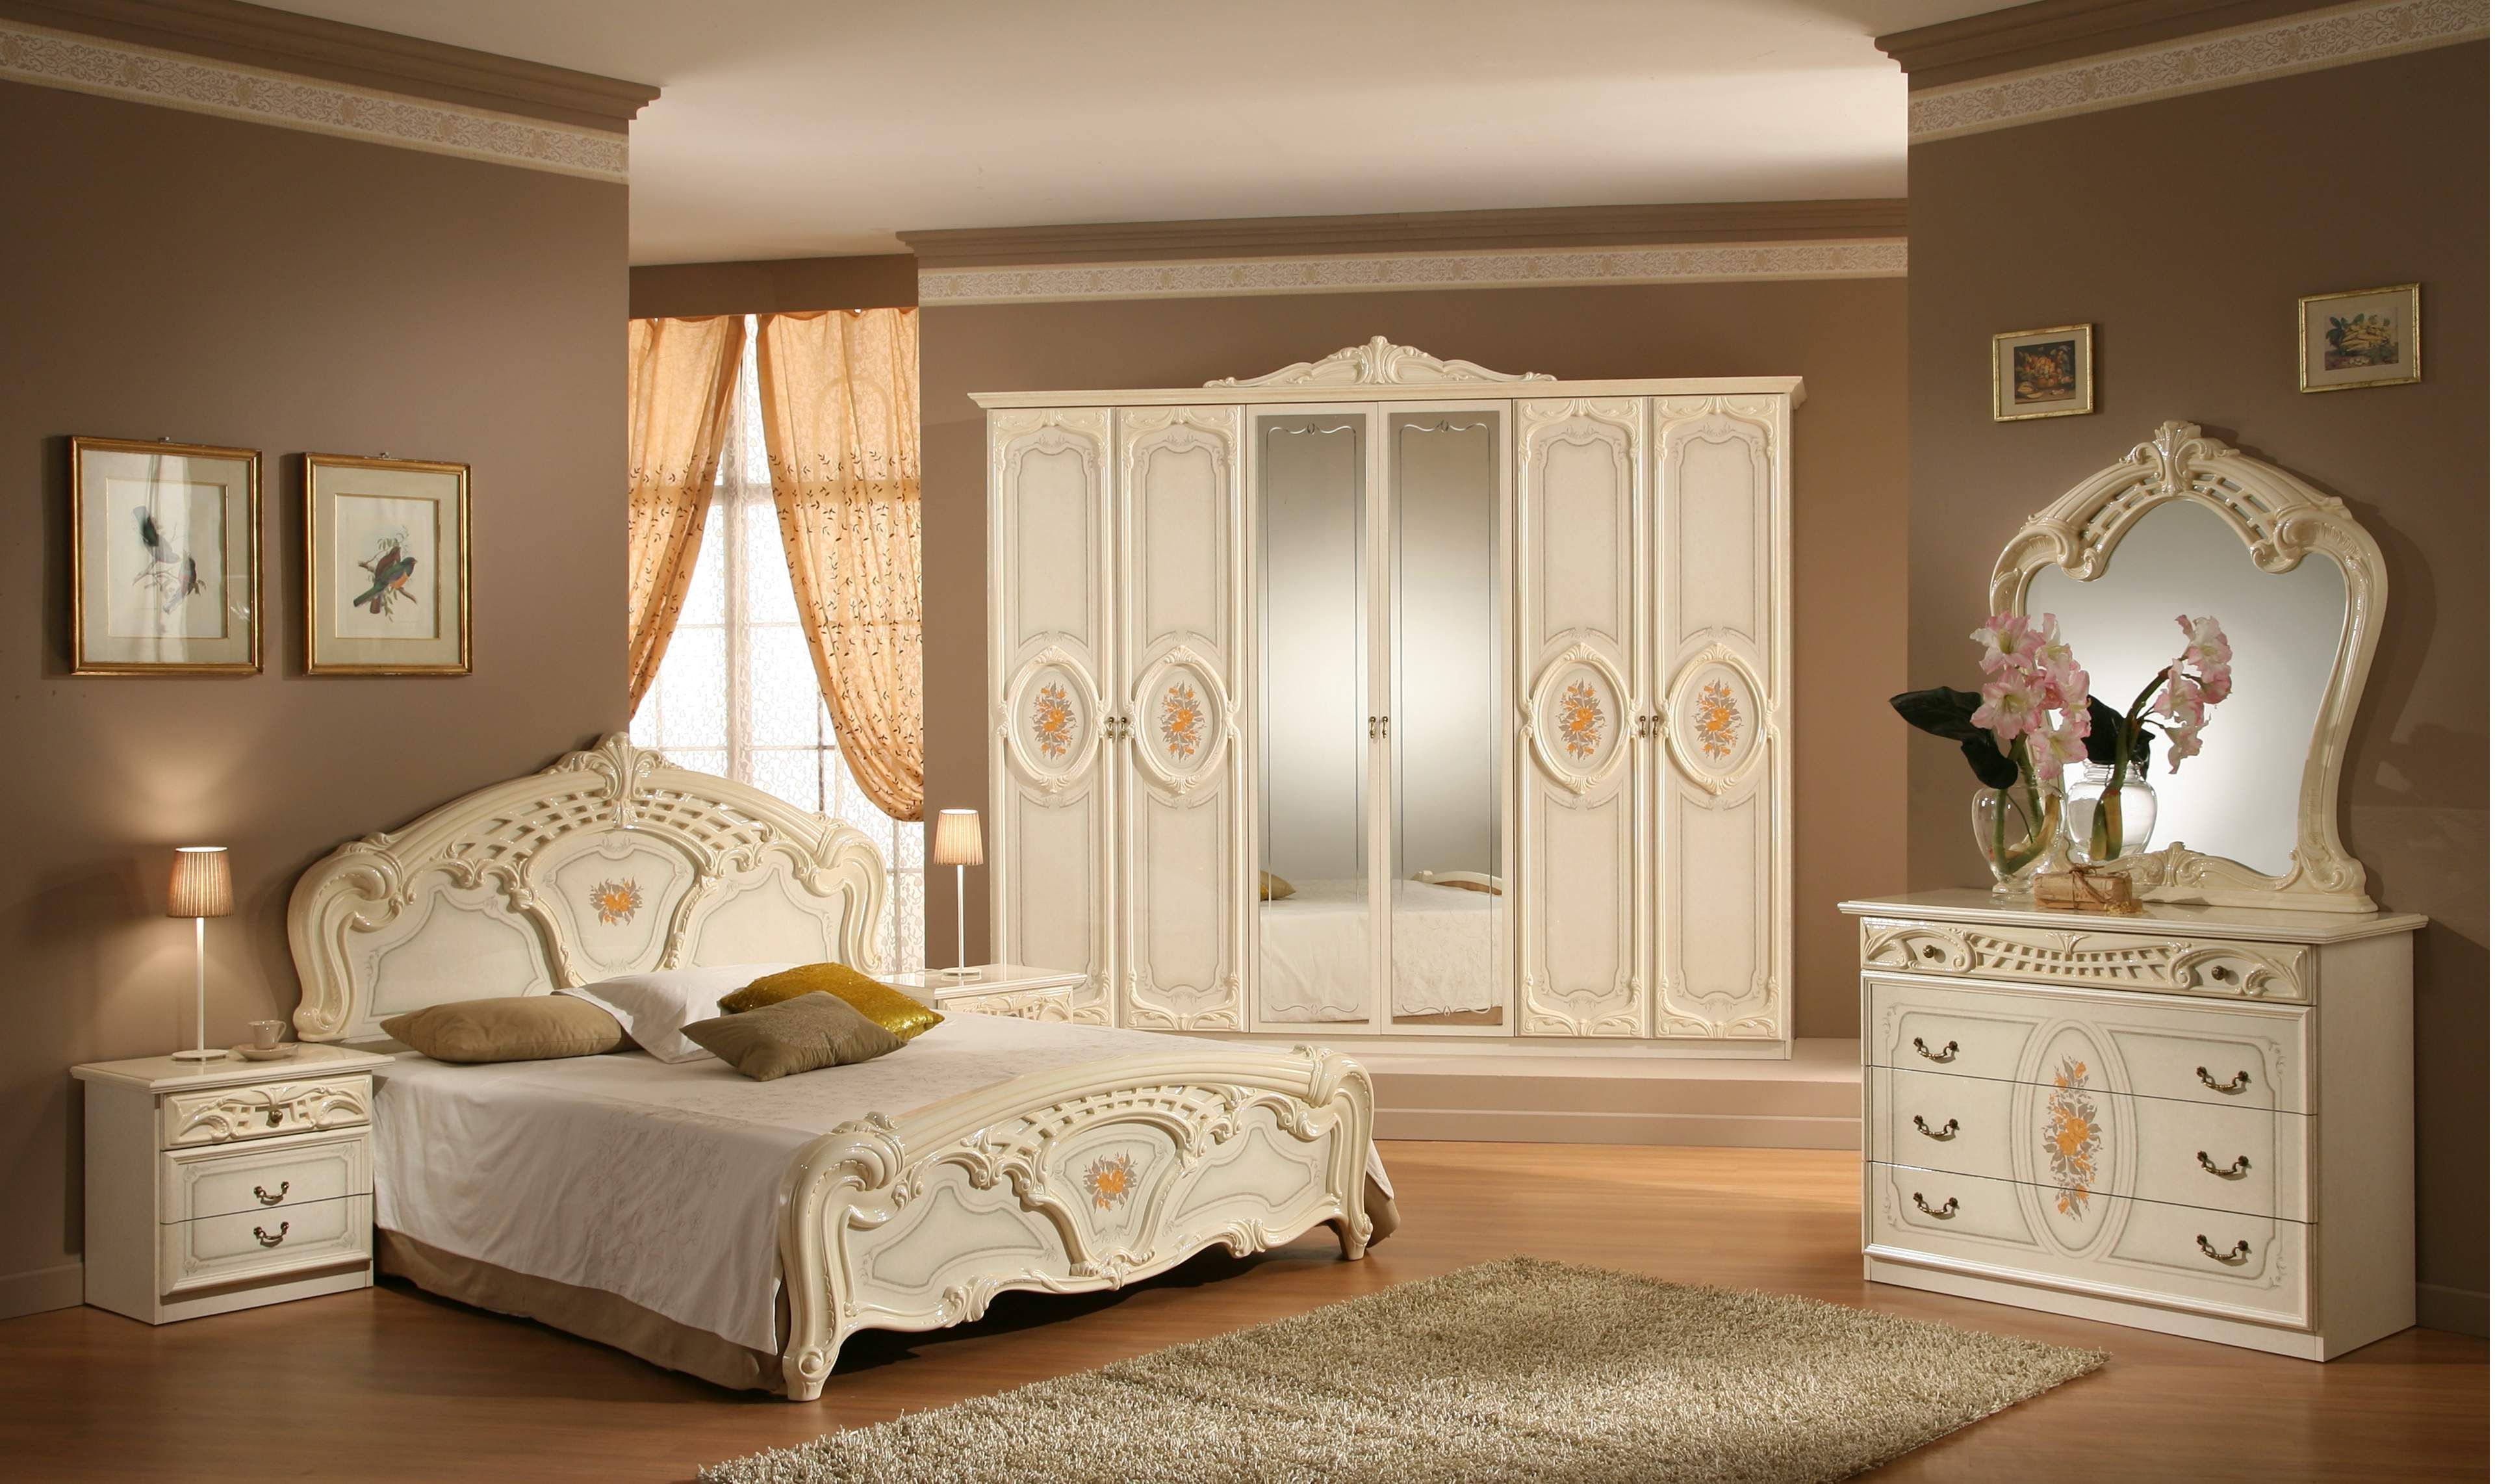 Bedroom Modern White Furniture Cool Beds Loft For Kids Bunk With ...